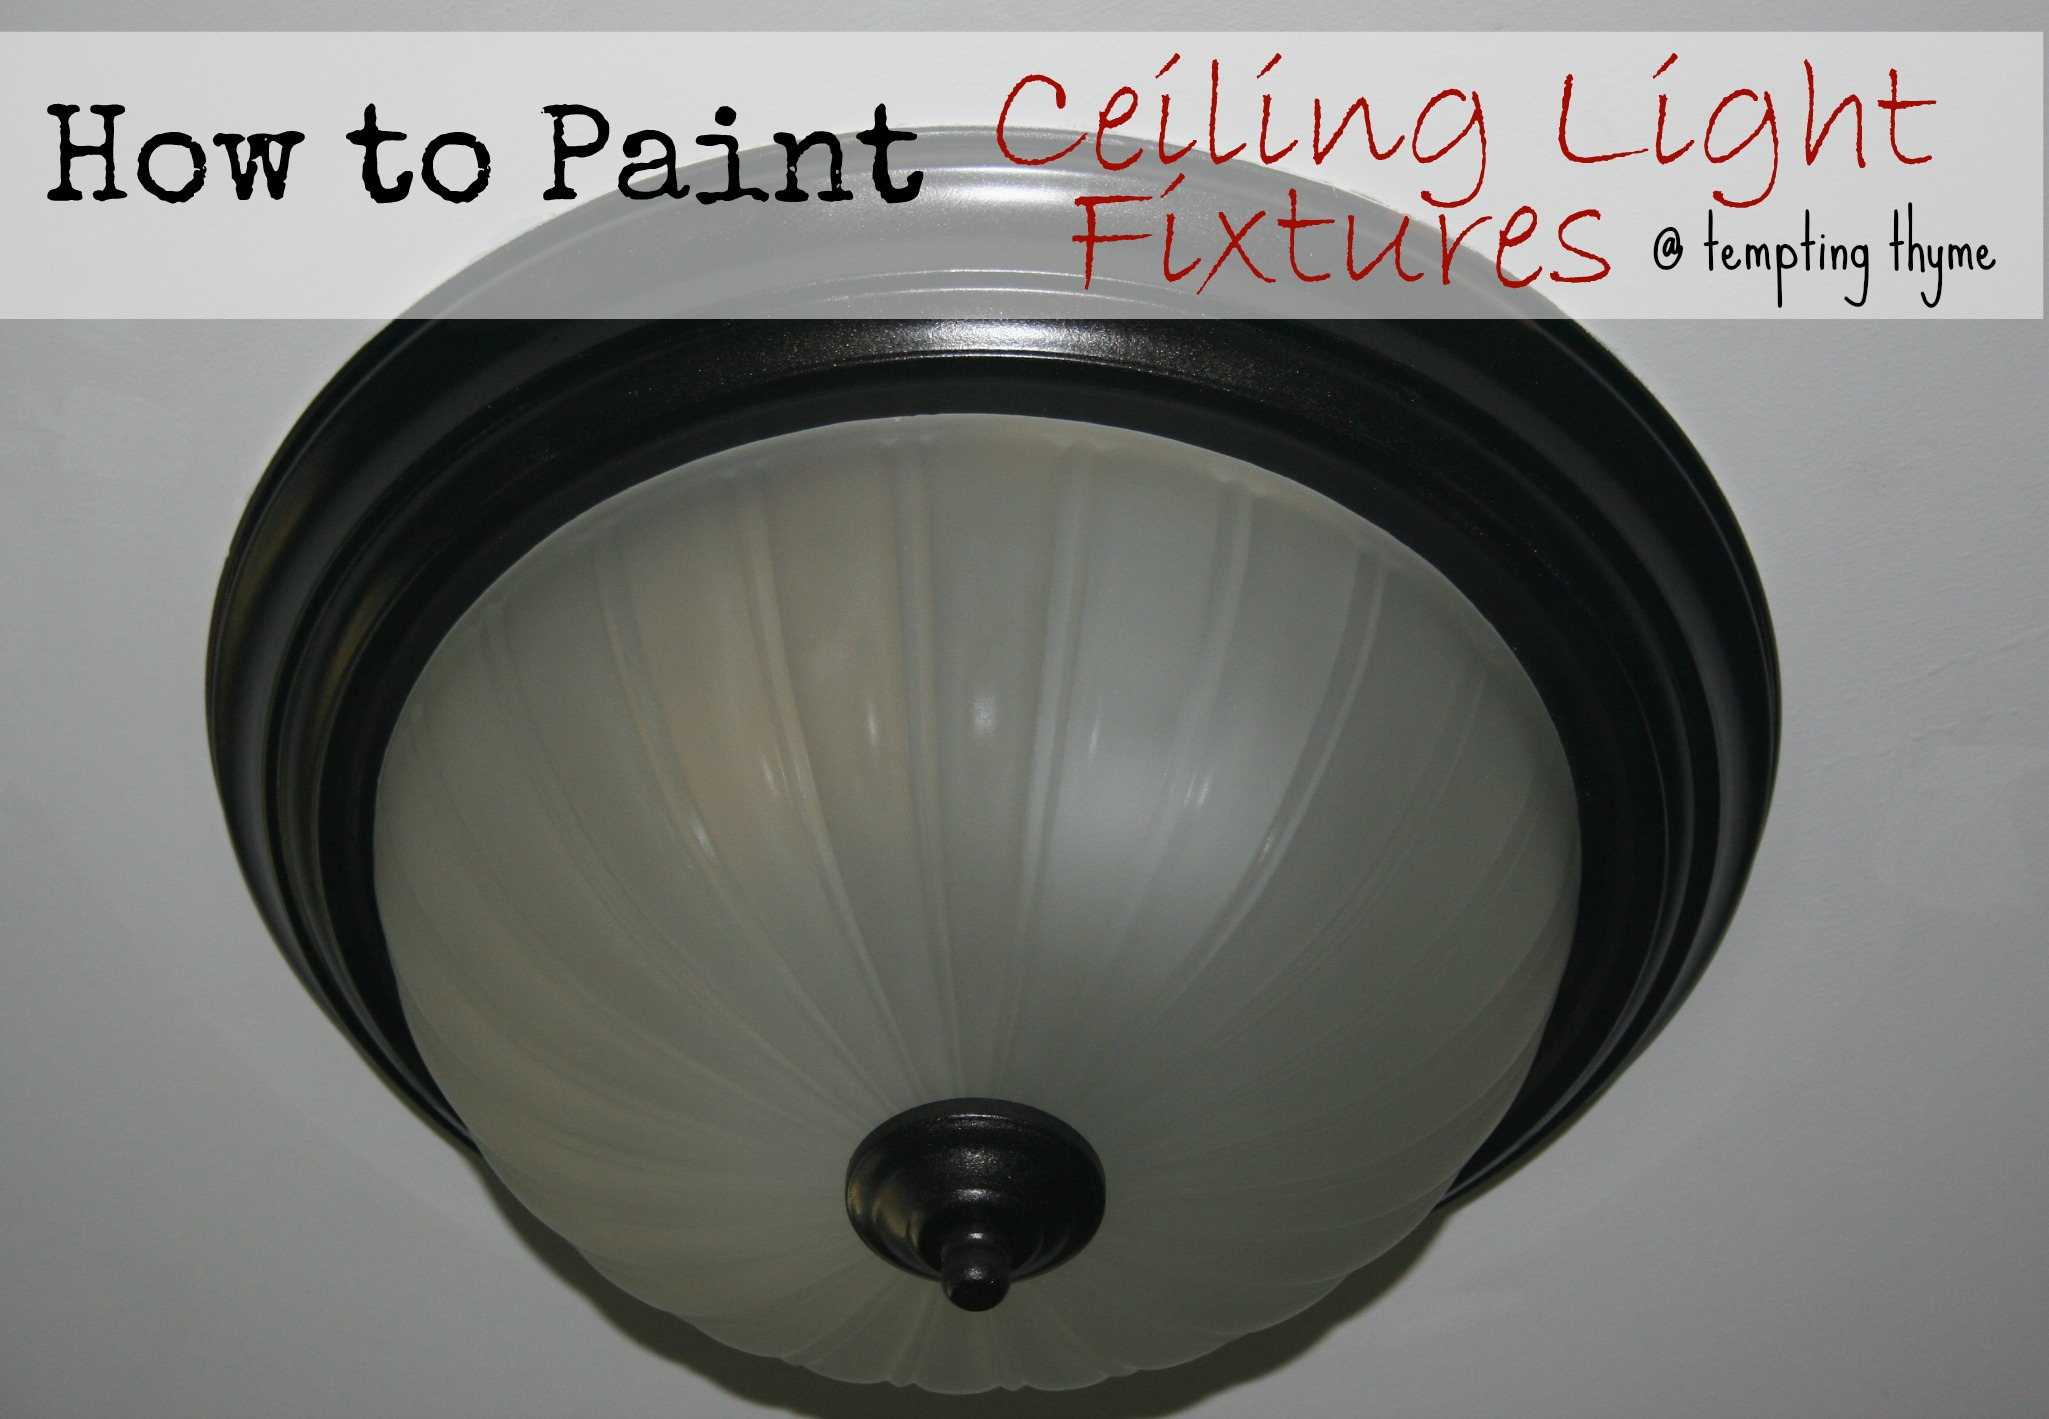 Updating Even More Brass Light Fixtures Using Spray Paint Tempting Thyme